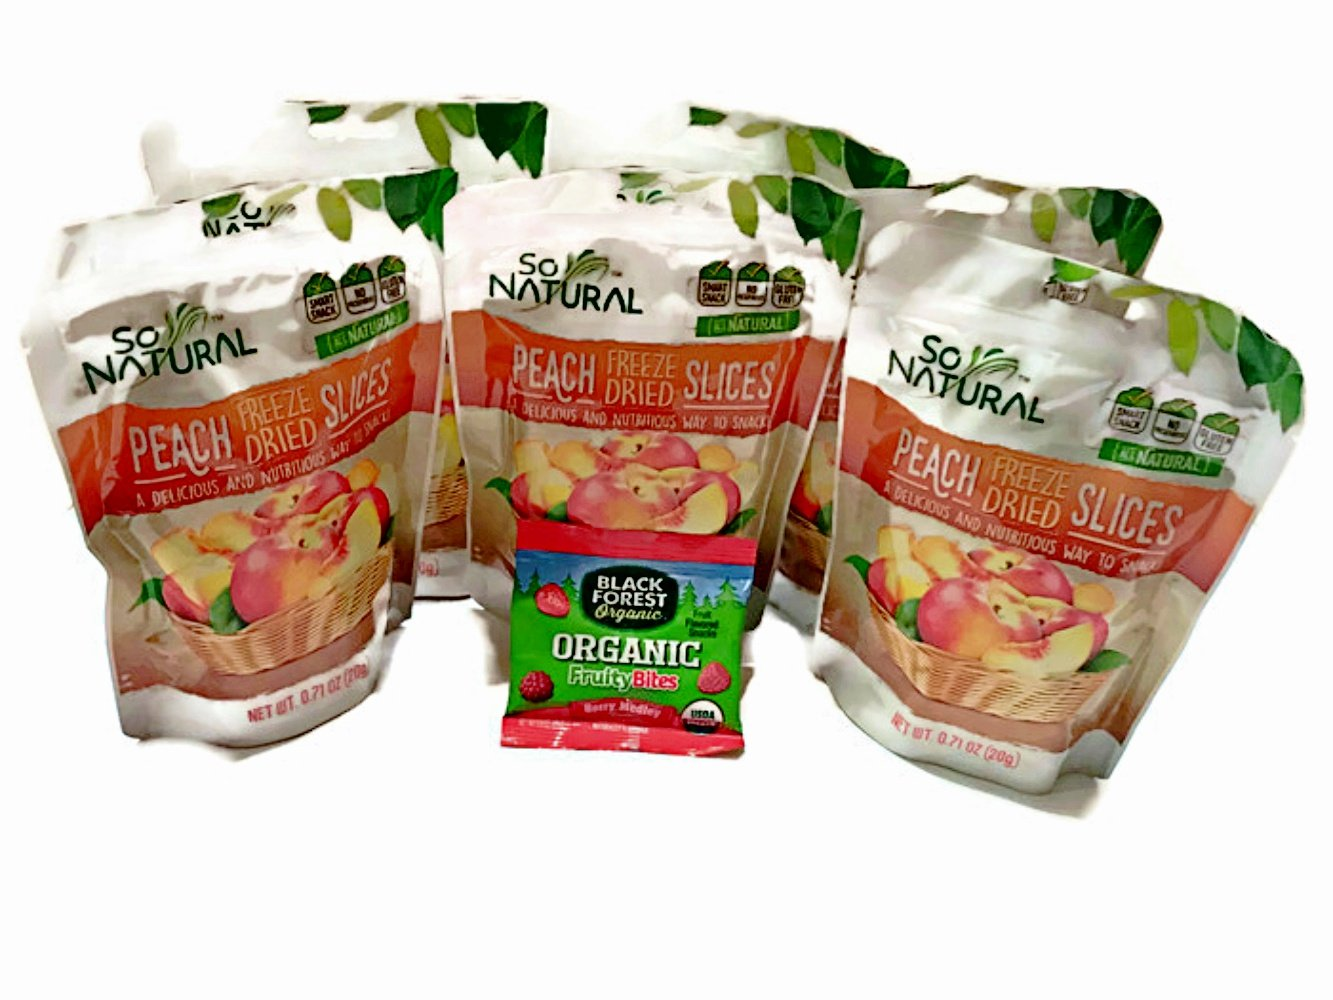 So Natural Freeze Dried Peaches 6 packages INCLUDES Organic Fruity Bites